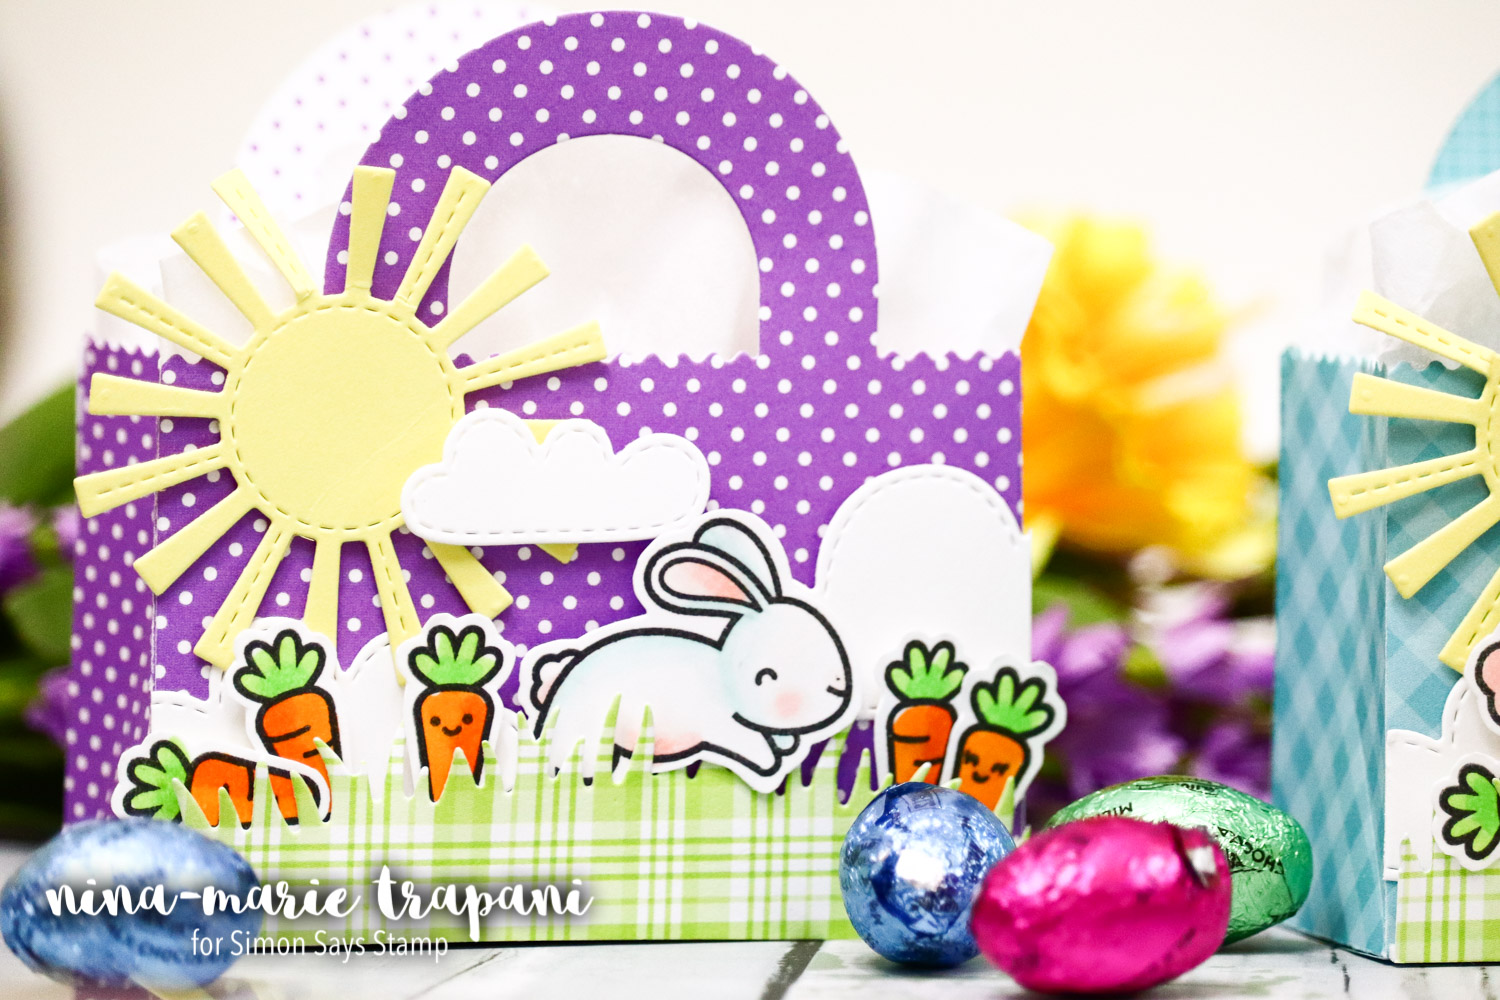 Studio Monday with Nina-Marie: Easter Treat Bags with Lawn Fawn